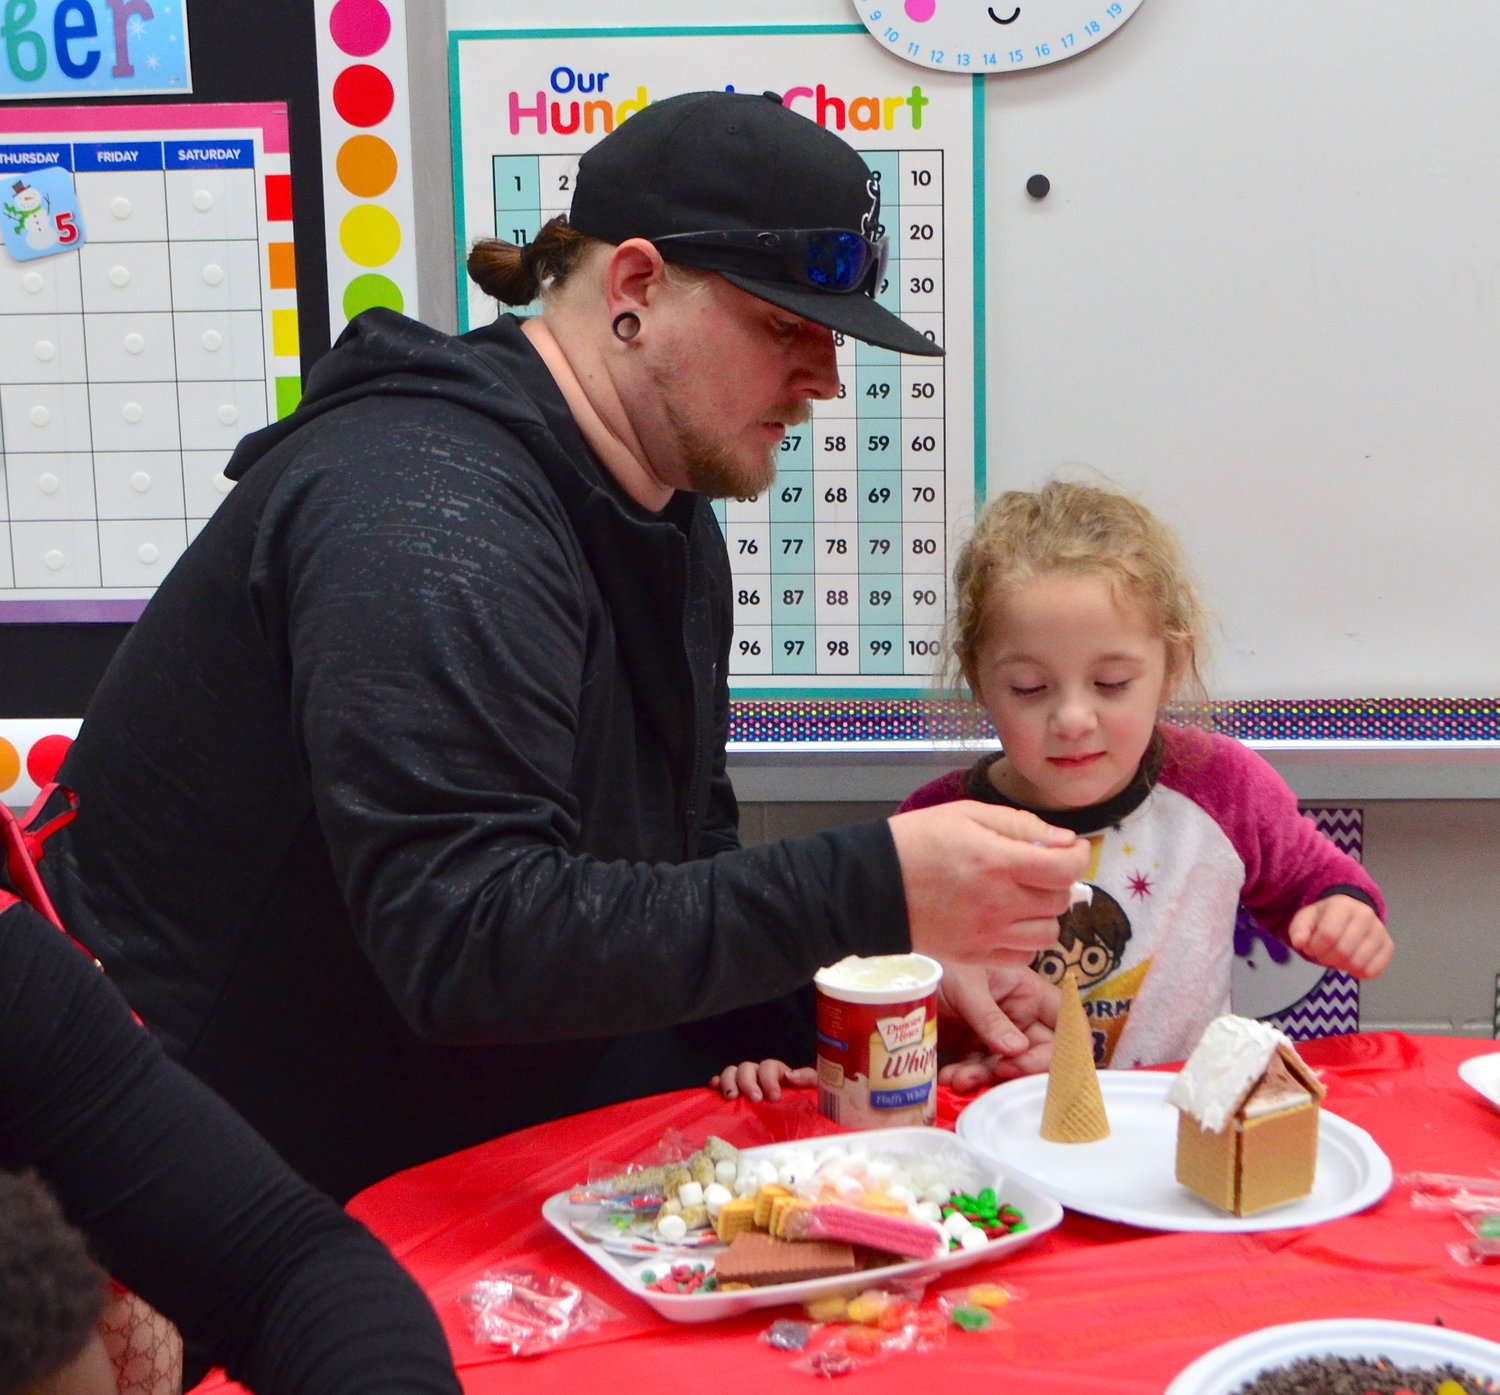 Ahead of the Christmas holiday, kindergarten students at T.R. Simmons Elementary School decorated gingerbread houses on Thursday with the help of their parents and teachers. Kindergartners also made candy Christmas trees. Decorating gingerbread houses in an annual tradition for kindergarten students to enjoy at the school.